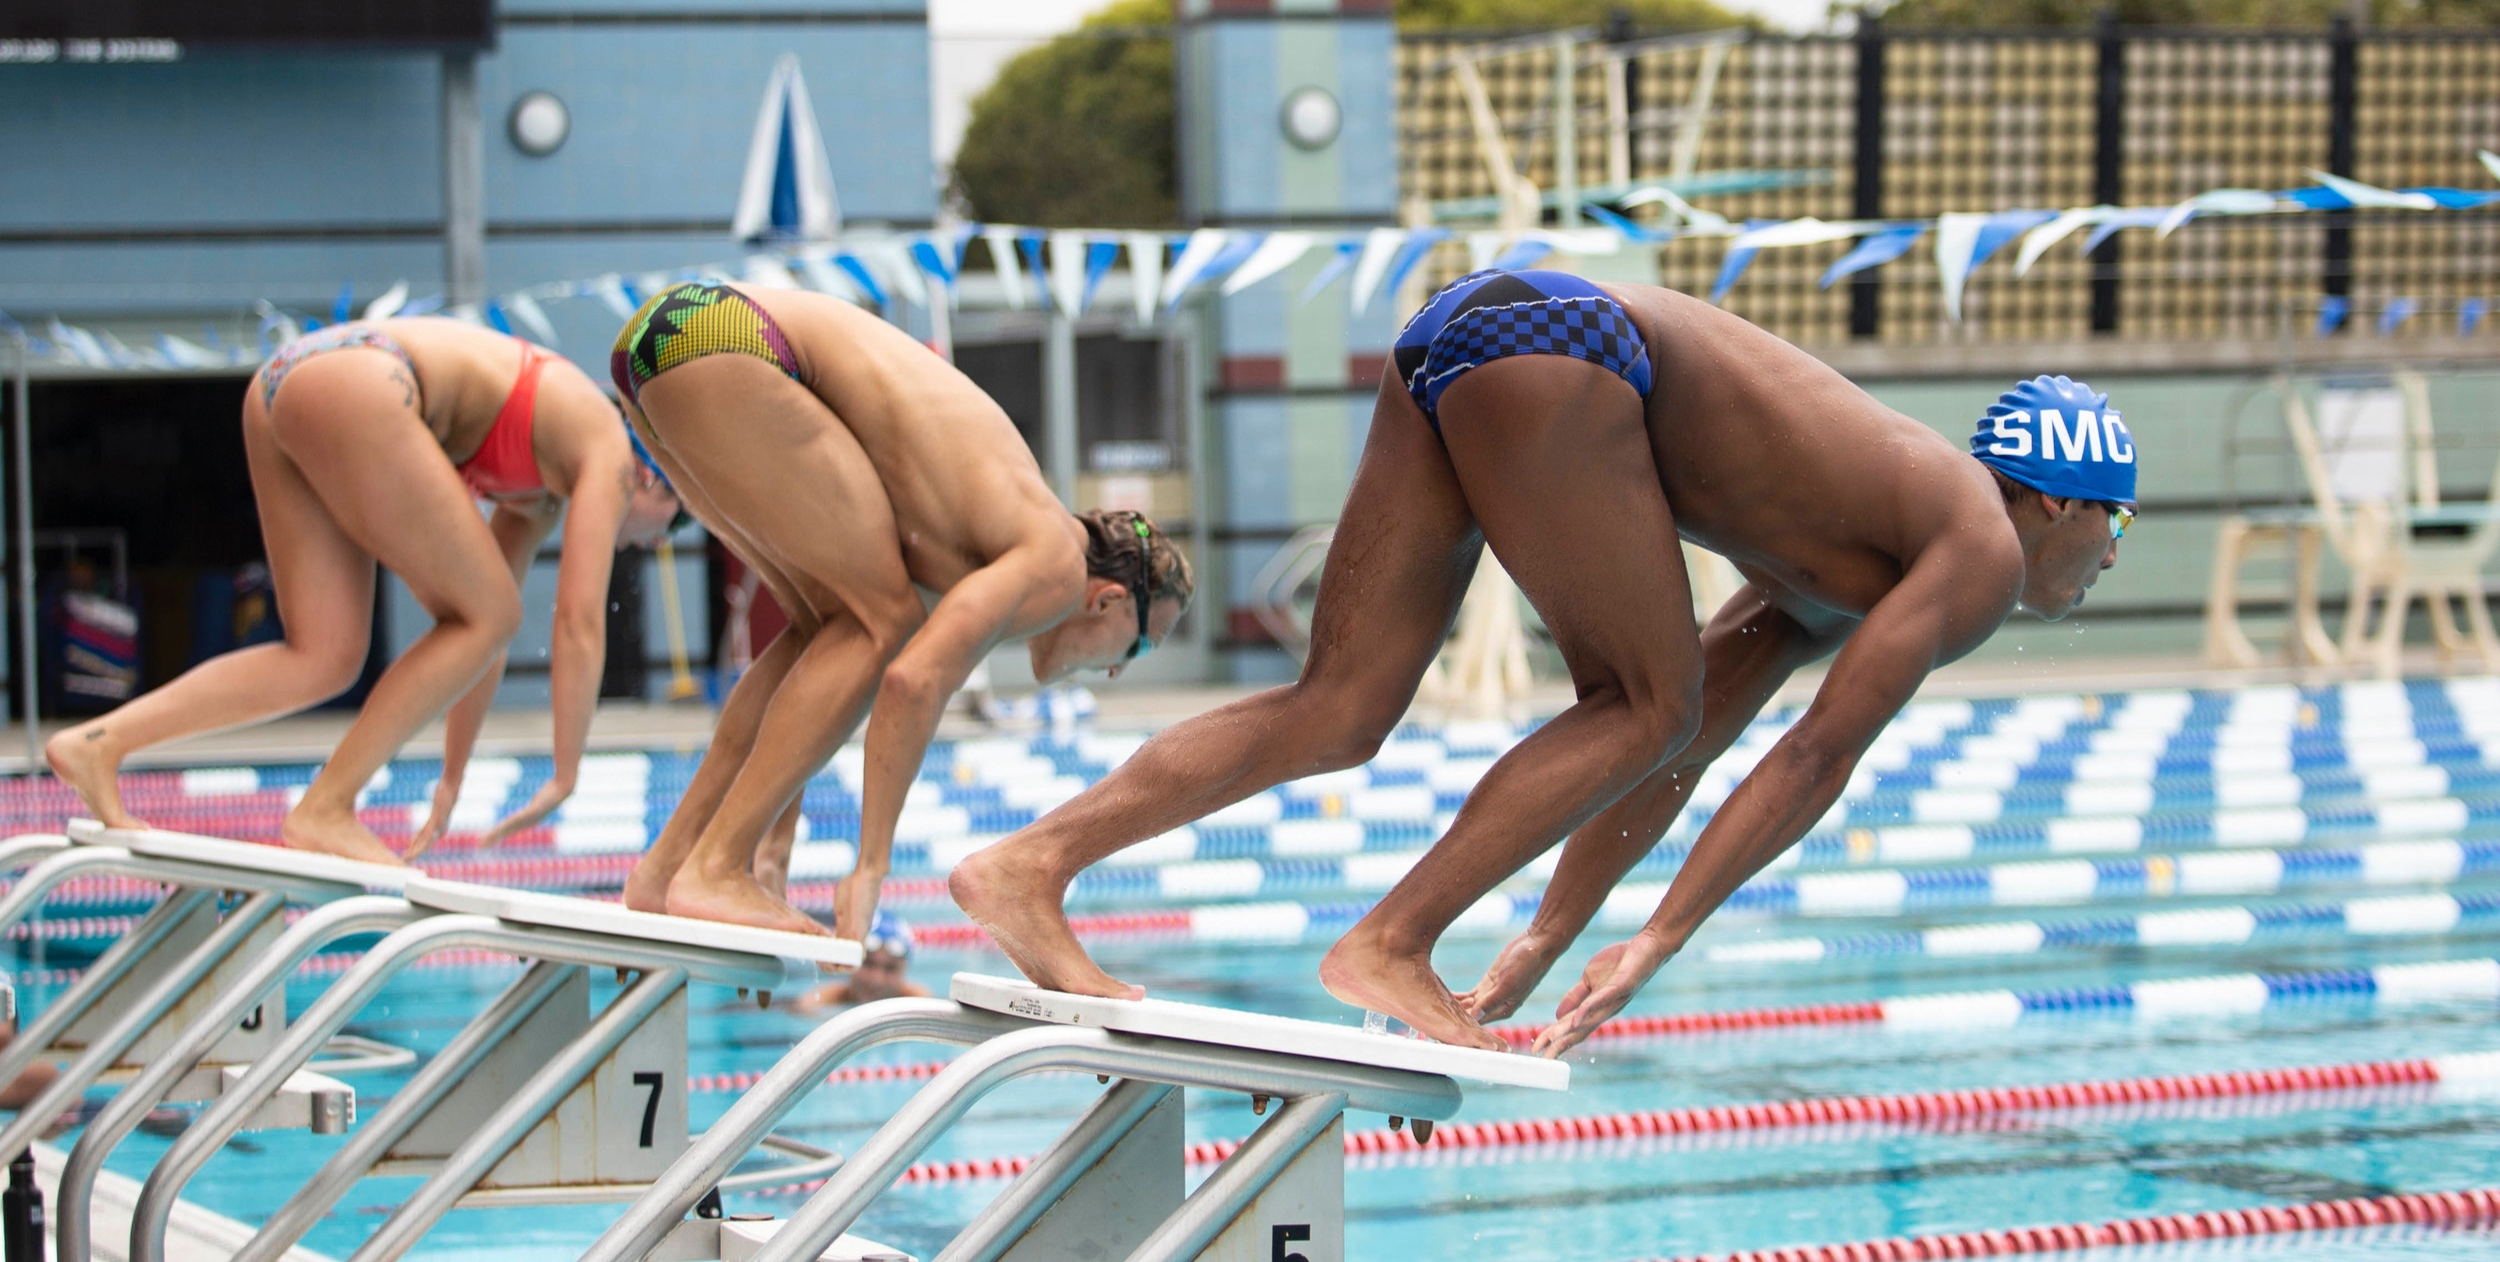 Santa Monica College swim team (SMC) swimming team, practicing for State Championship in San Jose. Santa Monica College on April 29, 2019, Santa Monica, Calif. (Yasamin Jtehrani / The Corsair)